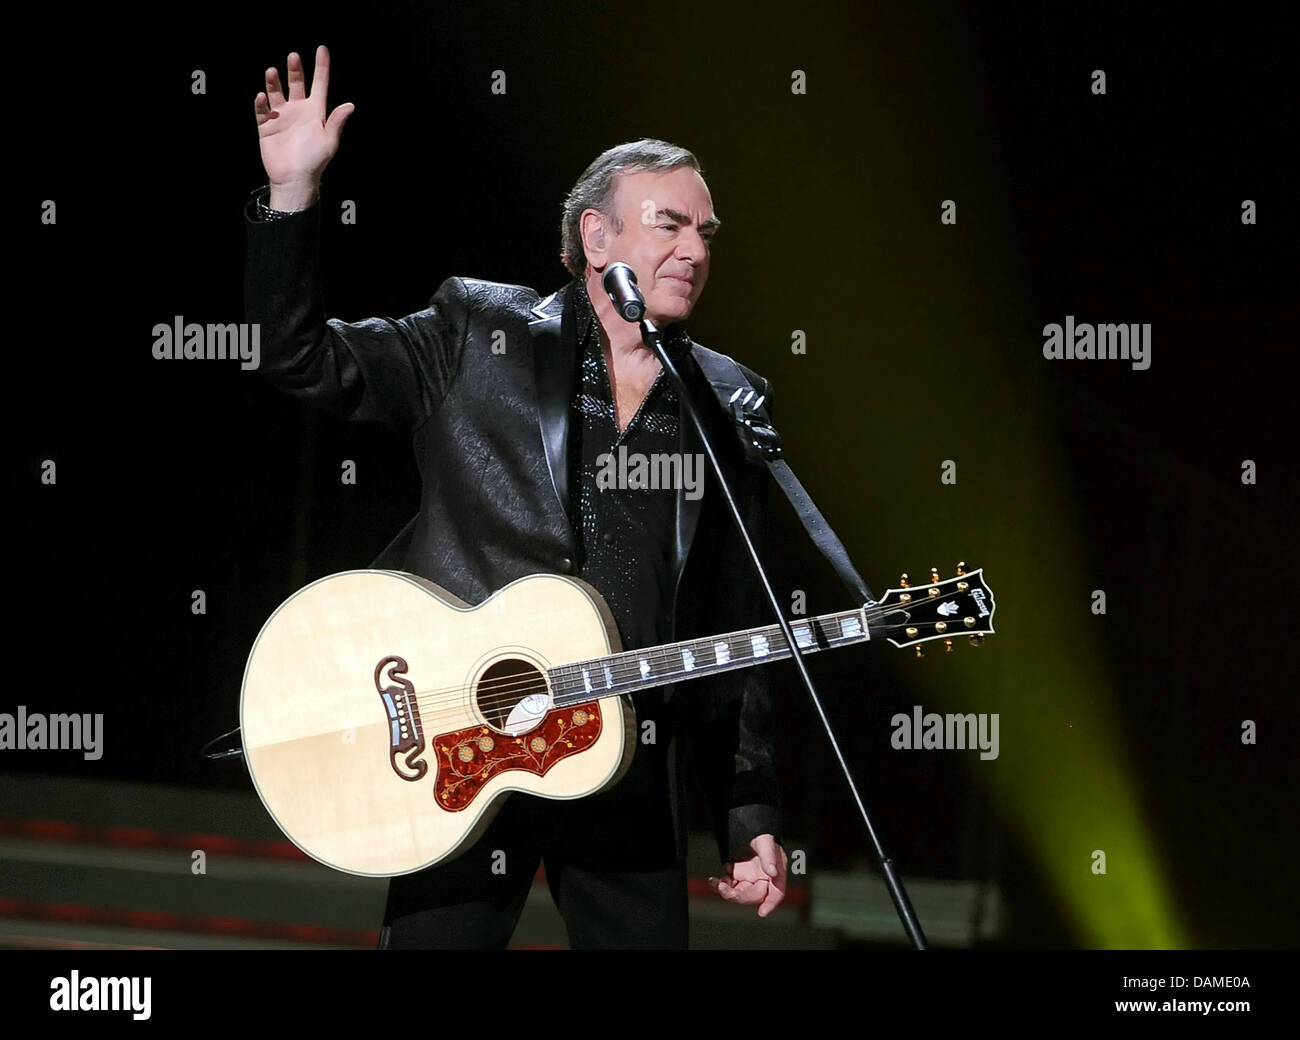 industry performs gala s to neil the musician diamond time onstage disease diagnosed pre icons grammy parkinsons salute and with parkinson was during